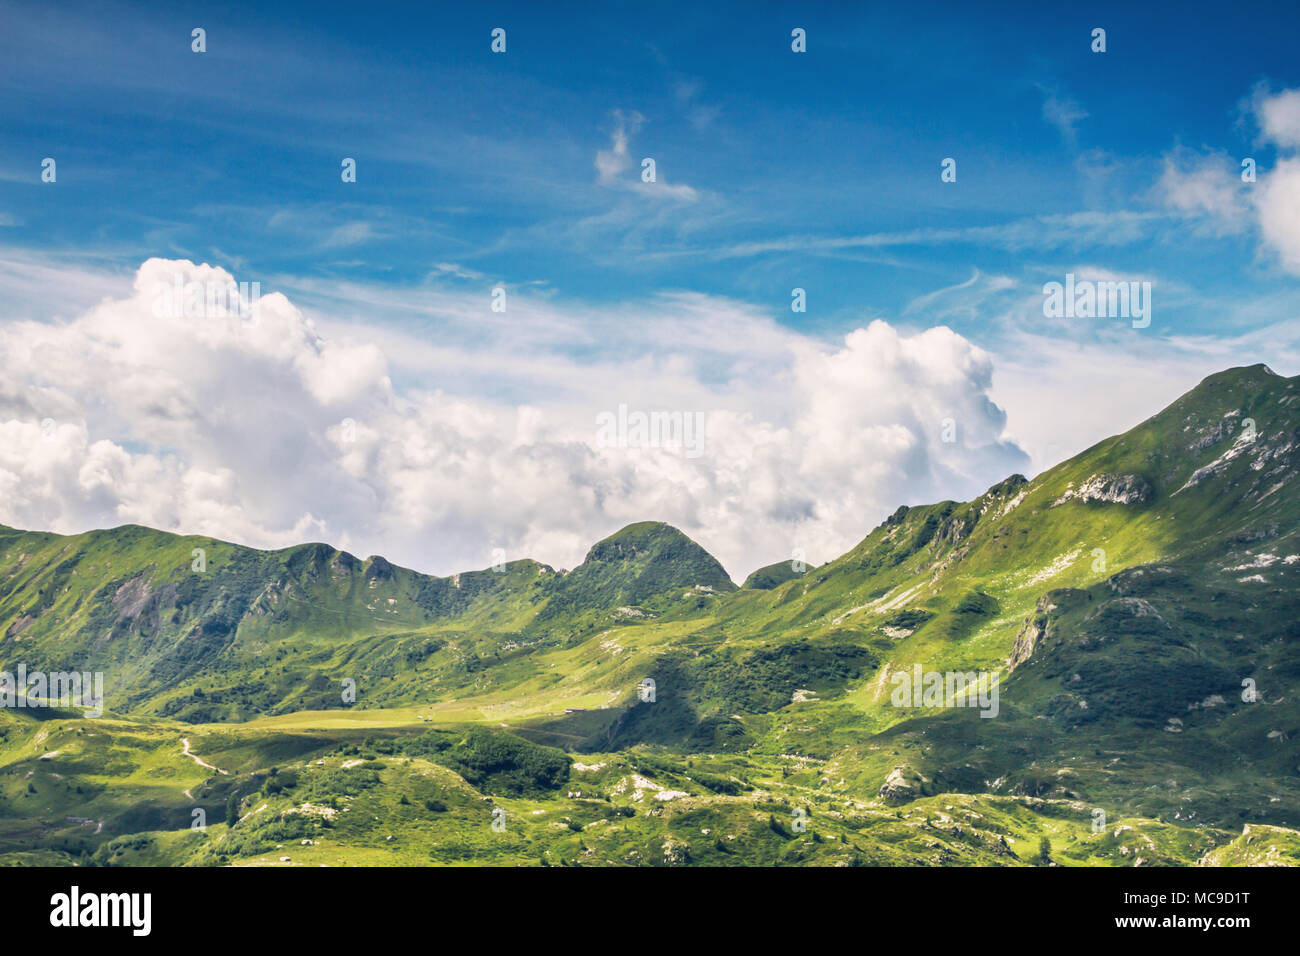 Panoramic view in Mount Gaver National Park, North Italy. Valsabbia, Brescia, Italy. - Stock Image